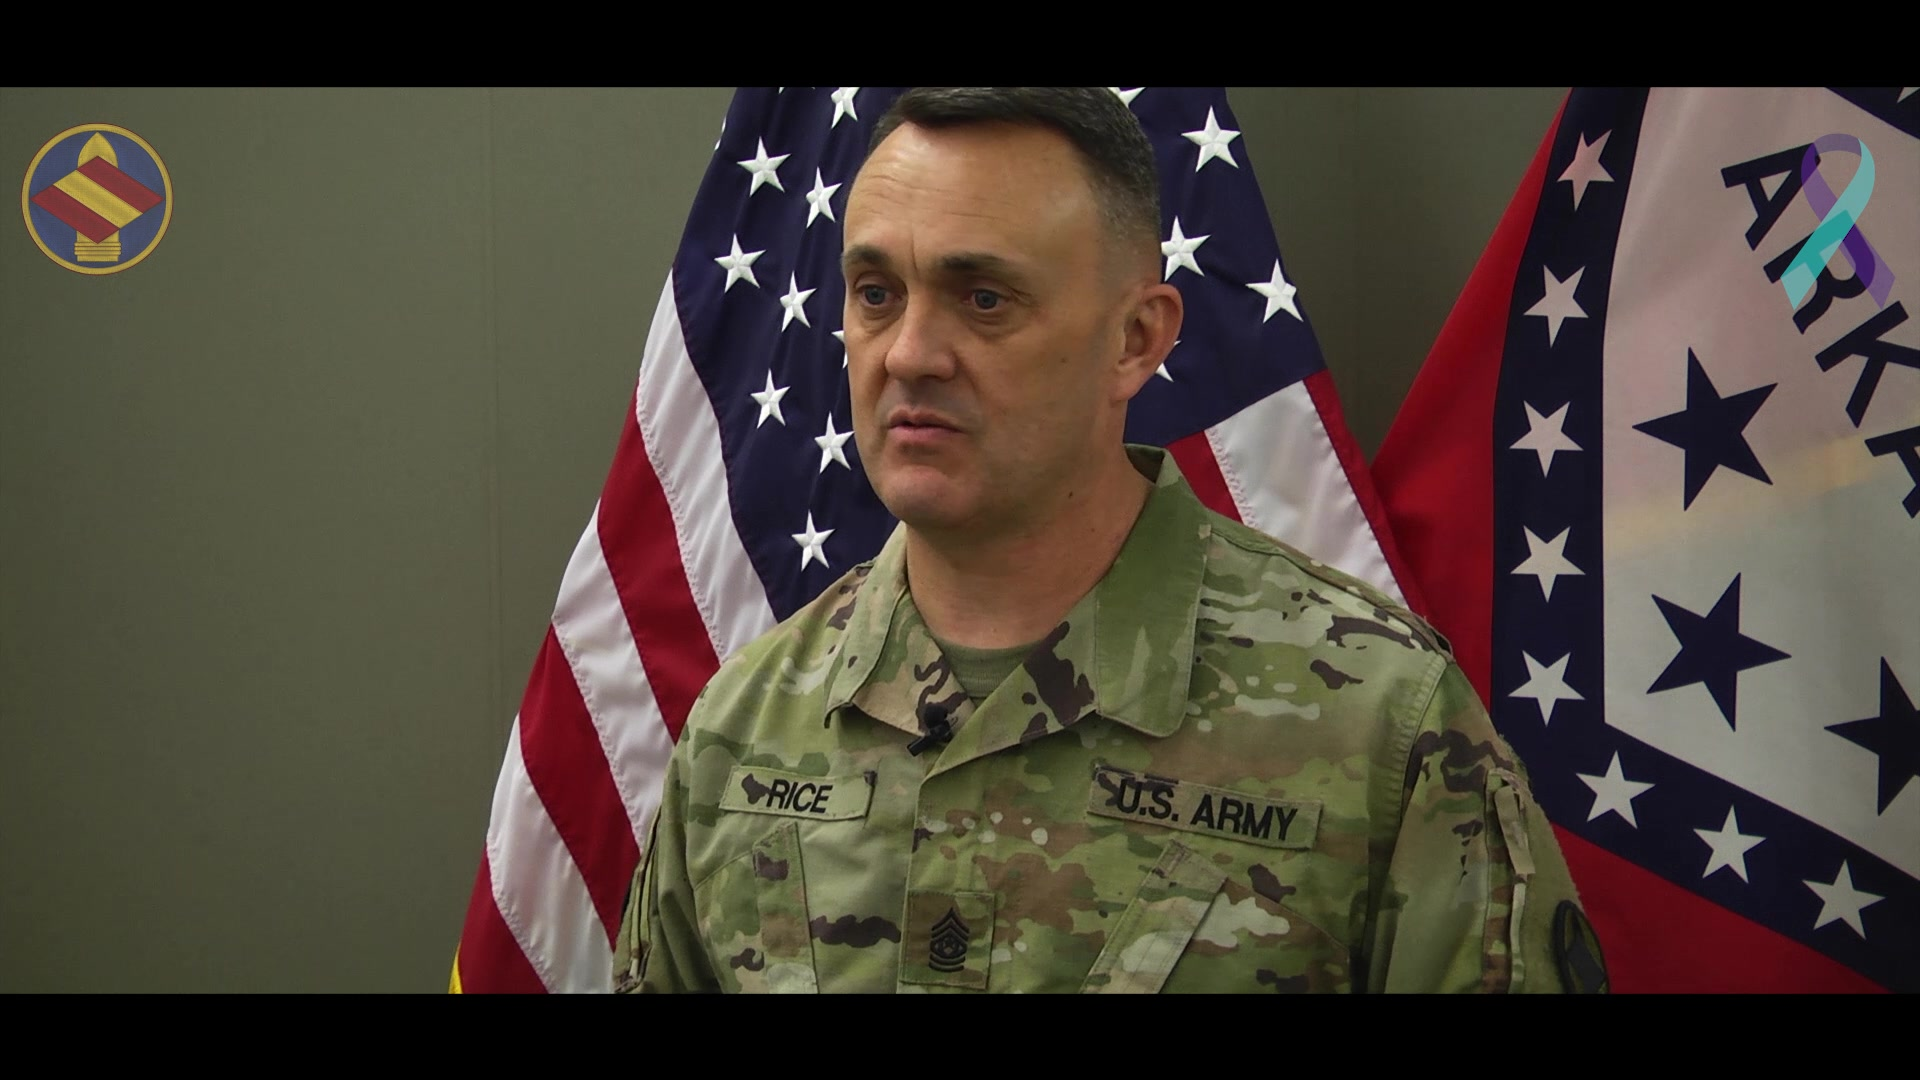 Command Sgt. Maj. Anthony Rice, Brigade Command Sergeant Major, 142nd Field Artillery Brigade, speaks about the seriousness of suicide, how to prevent it and includes a list of resources for veterans and families. Narrated statistics at end read by Spc. Stephen Wright, Brigade Public Affairs. 